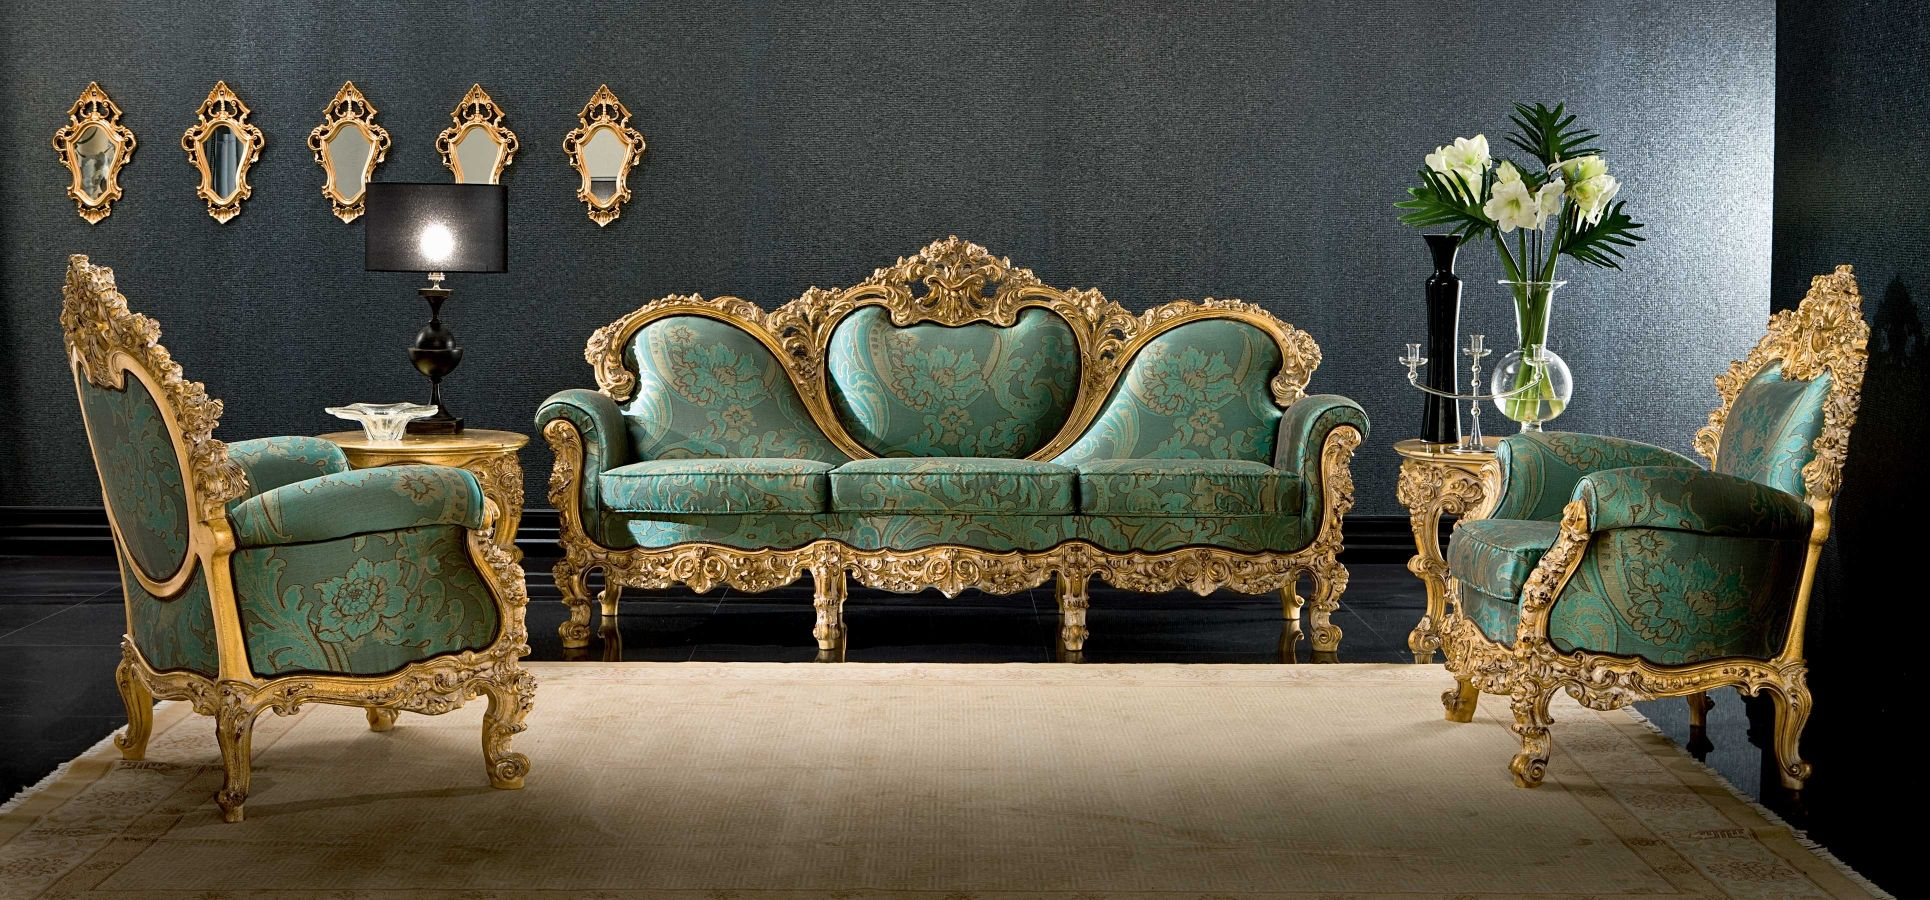 Plutone Living Room By Silik Italian Furniture Luxury Furniture Stores Classic Furniture Design